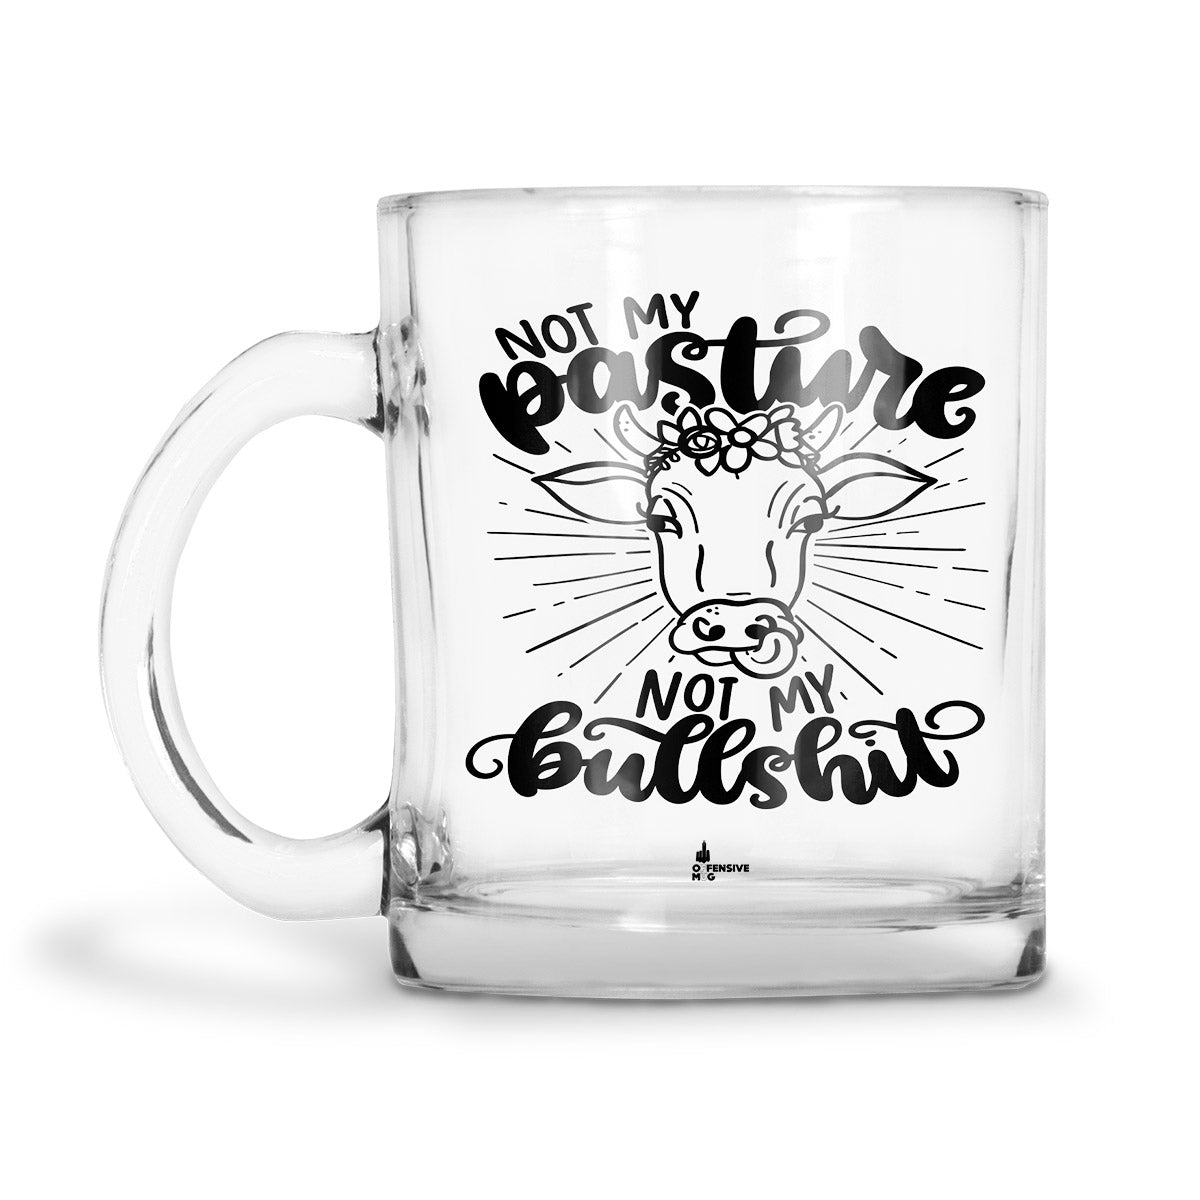 Diane Glass Mug - Offensive Mug